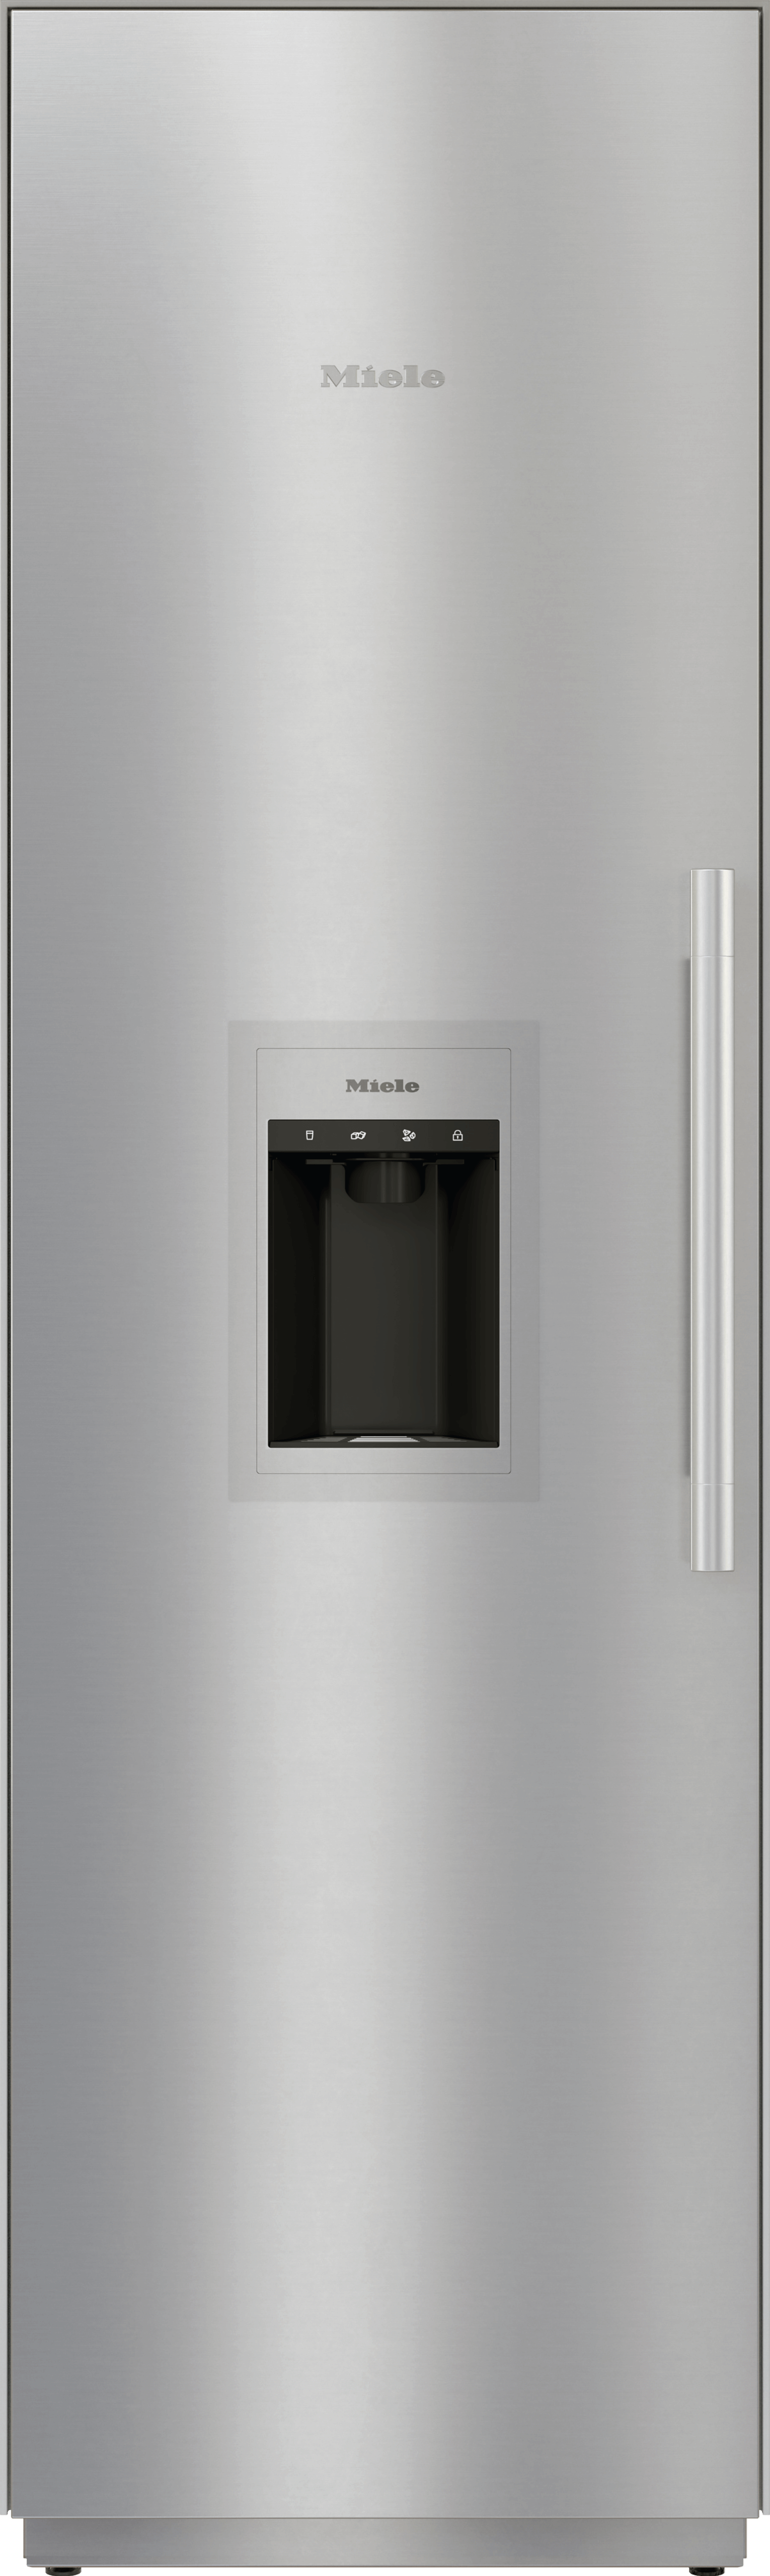 MieleF 2672 Sf - Mastercool™ Freezer For High-End Design And Technology On A Large Scale.